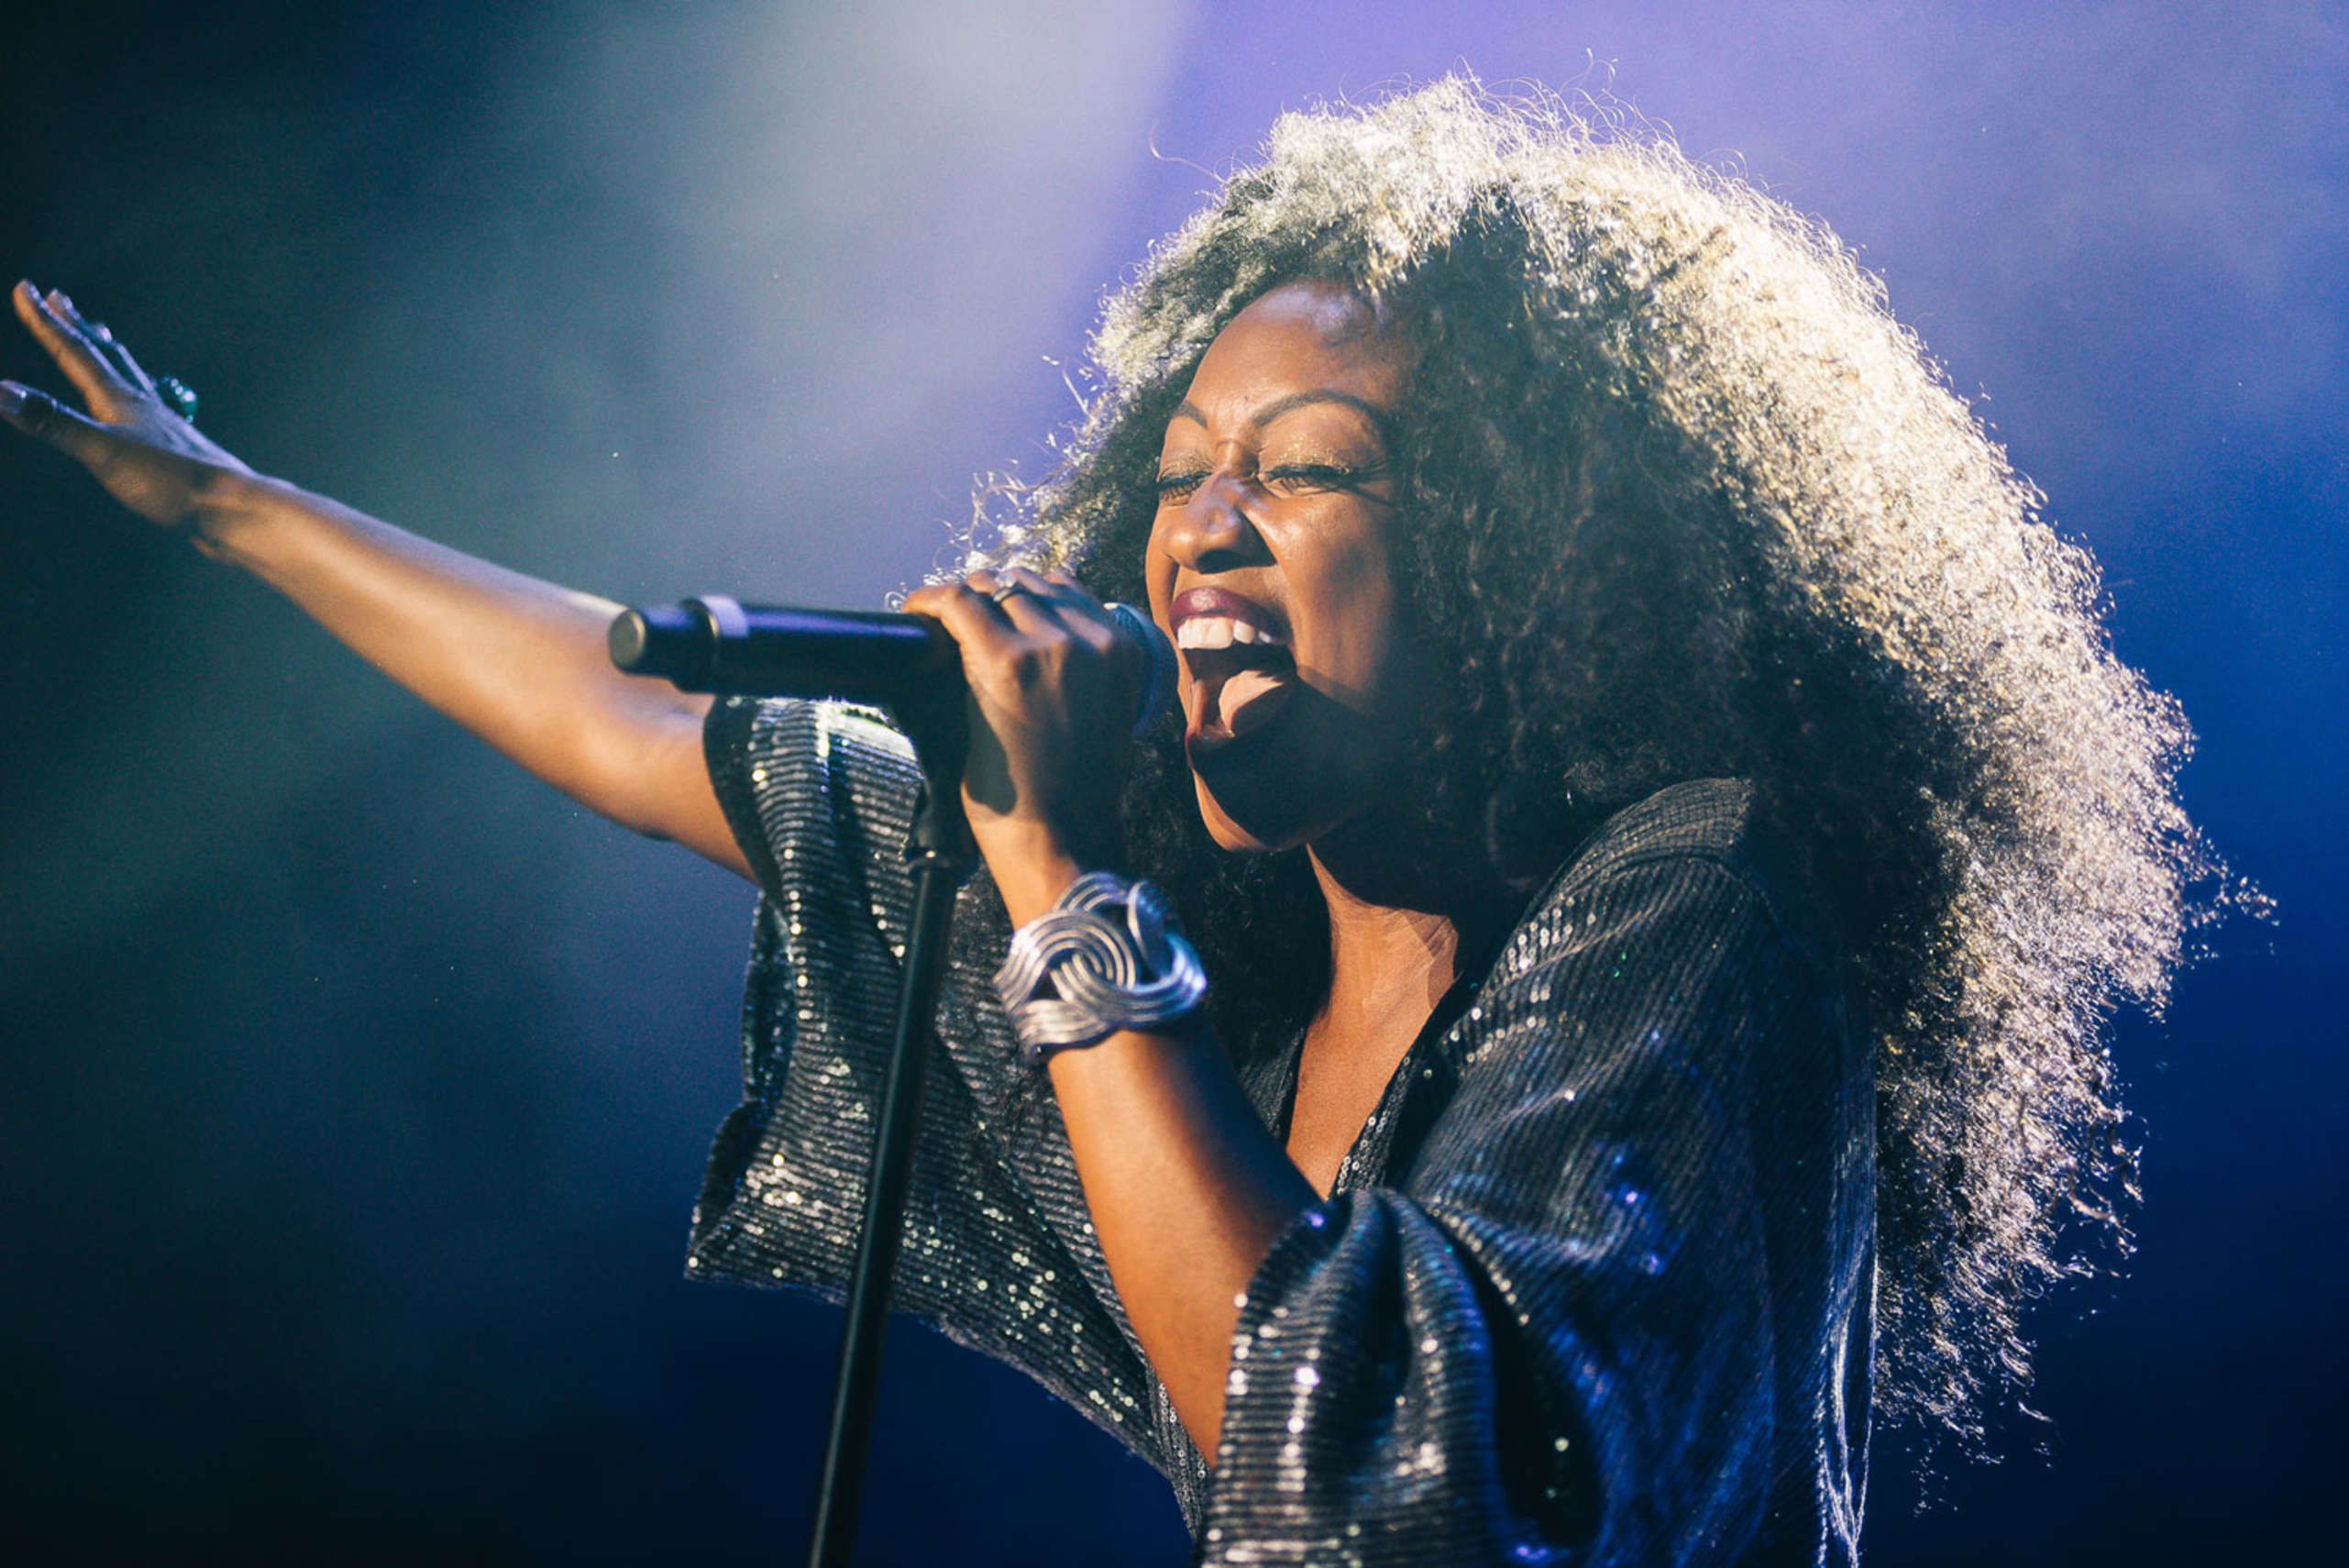 Beverley Knight performing at Save the Children's Night of Hits fundraising event, held at the Roundhouse in London on Wednesday 9th May 2018, to raise money for the charity's life-saving work